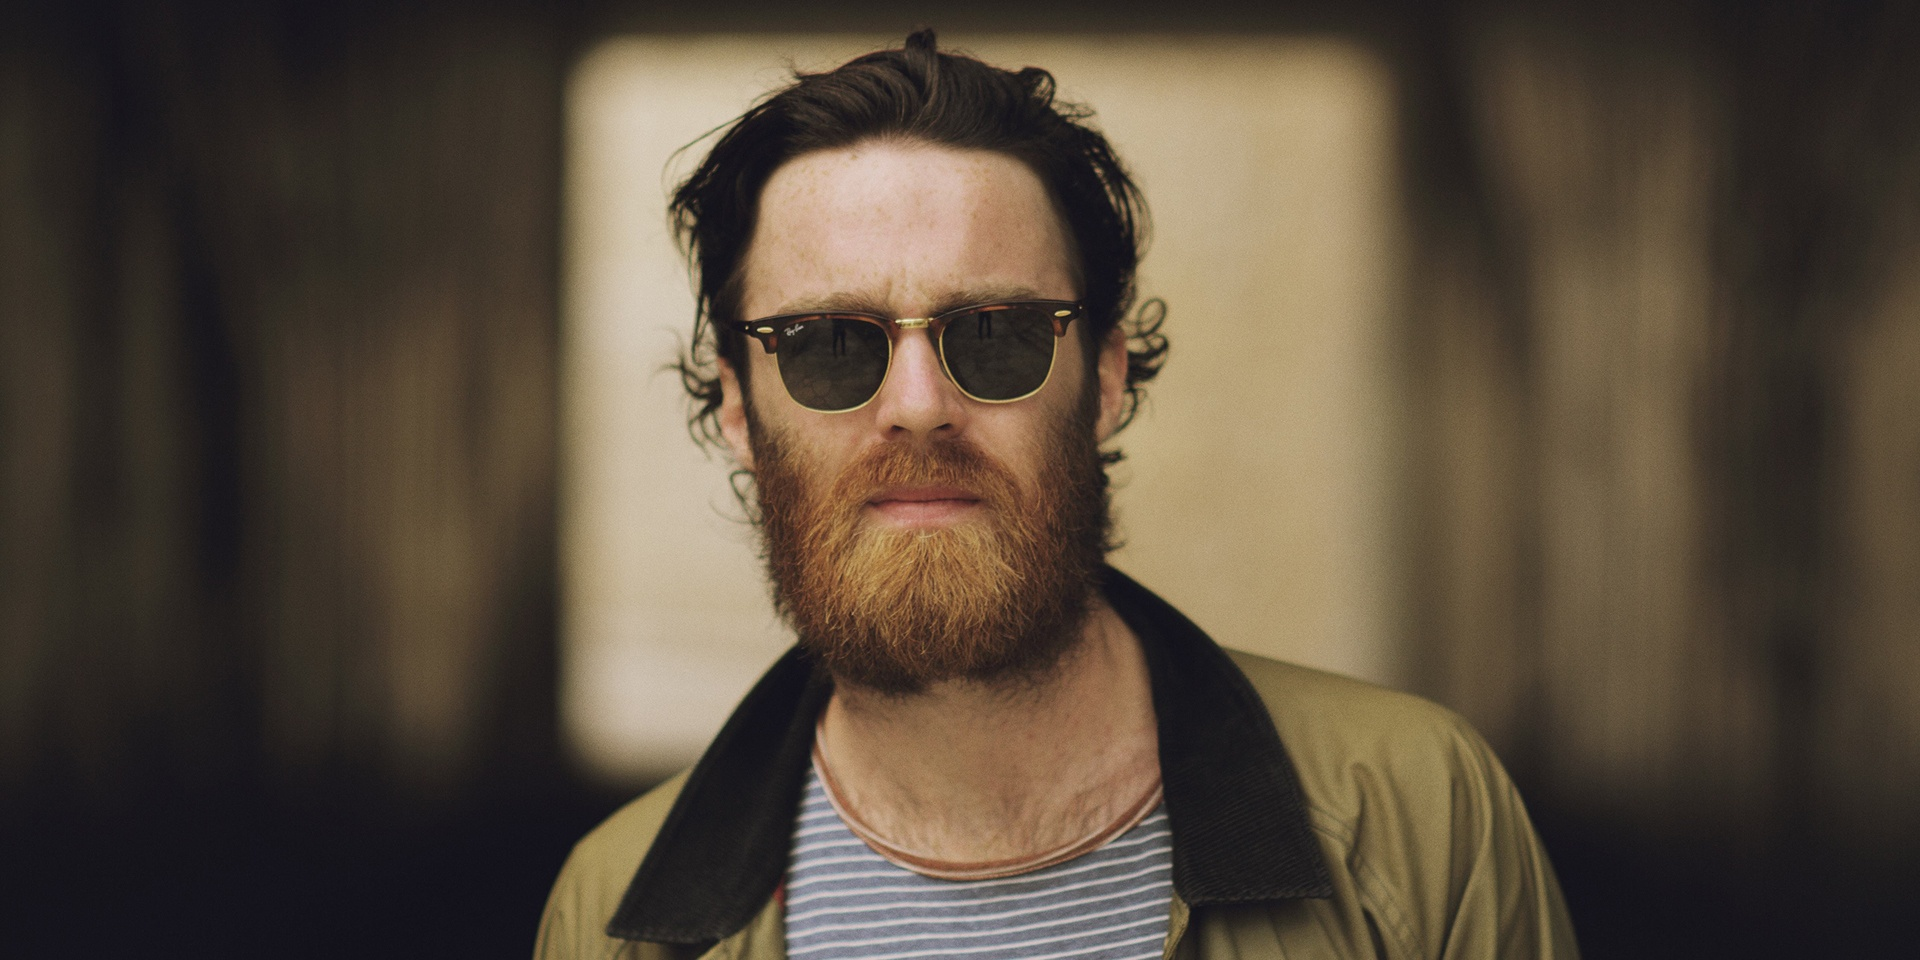 The artist formerly known as Chet Faker will perform at Laneway Festival Singapore next year